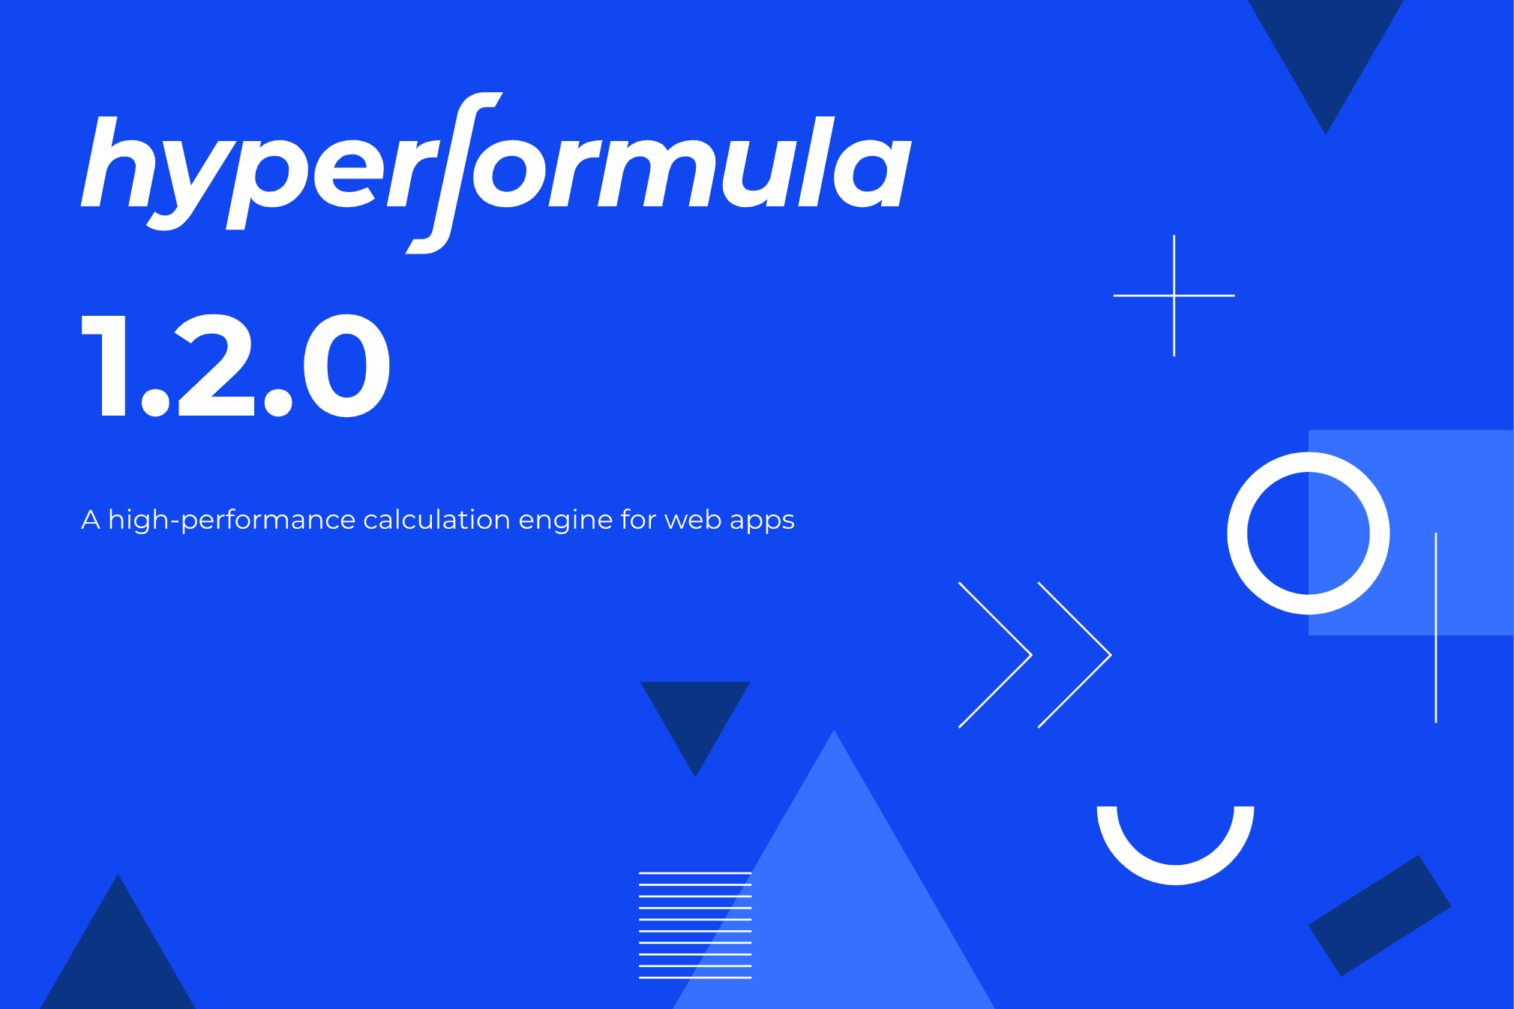 What's new in HyperFormula 1.2.0